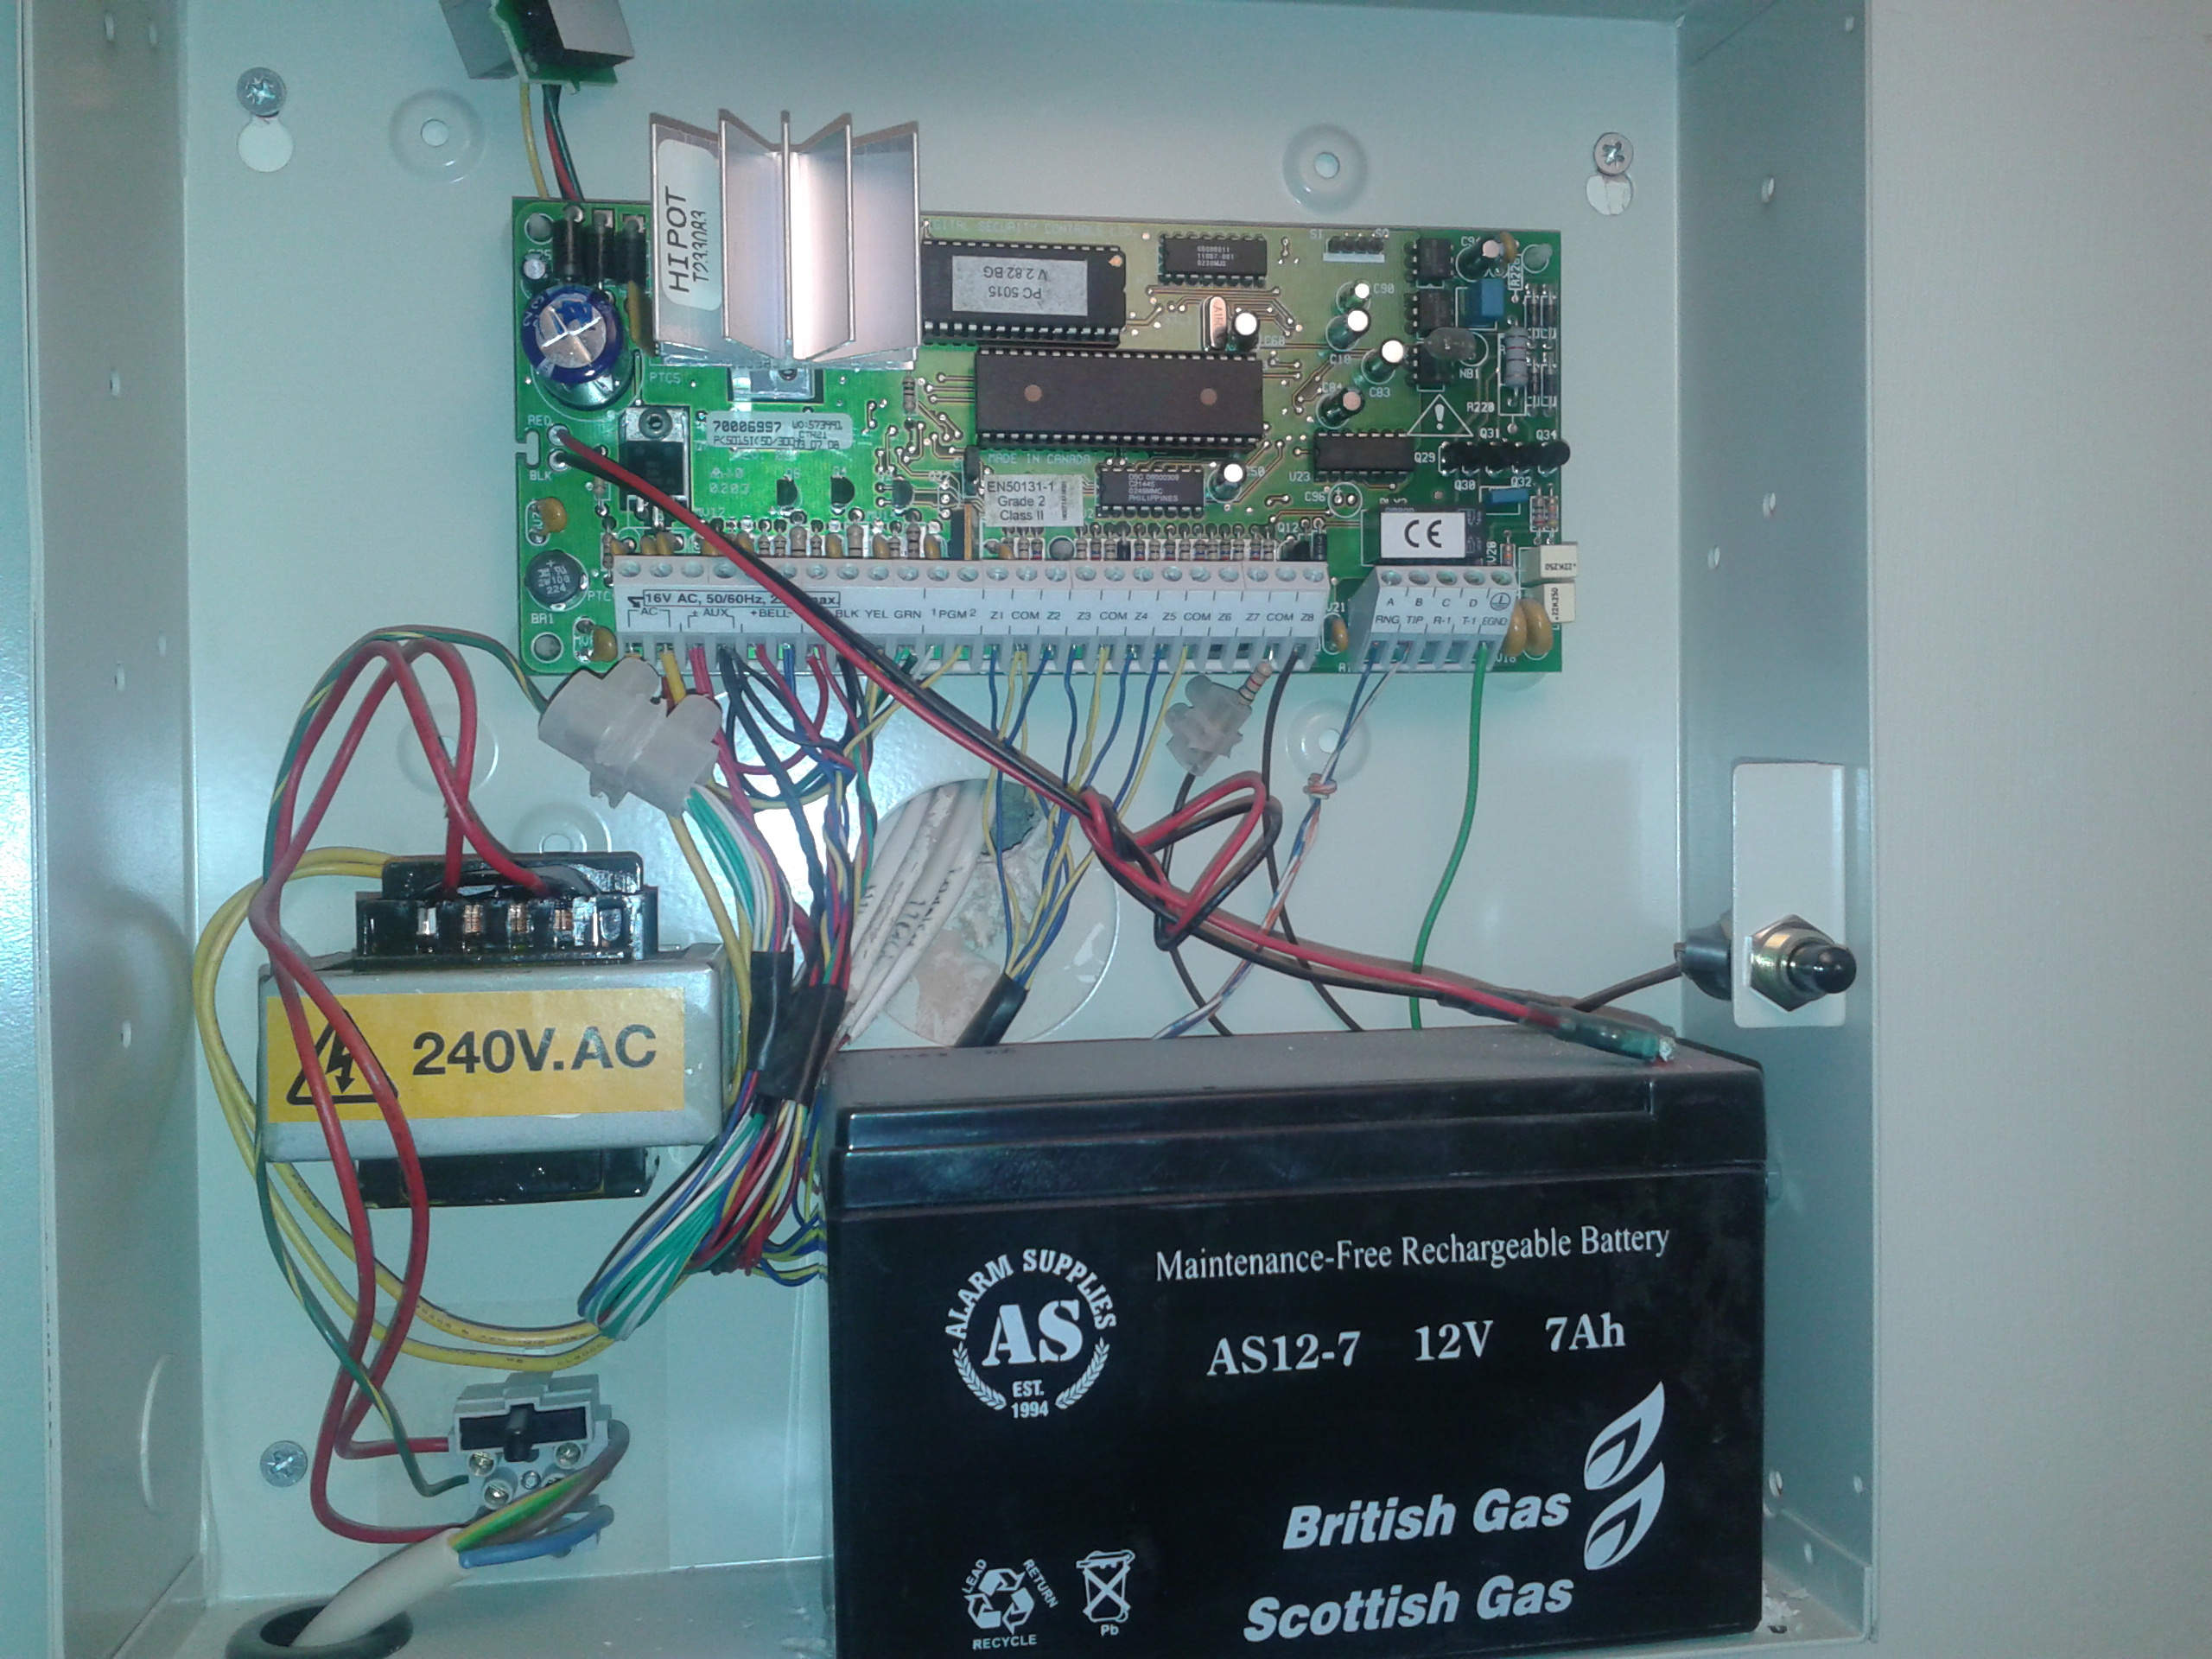 I have a DCS/ British Gas KP5501Z Alarm system in a house i bought 4